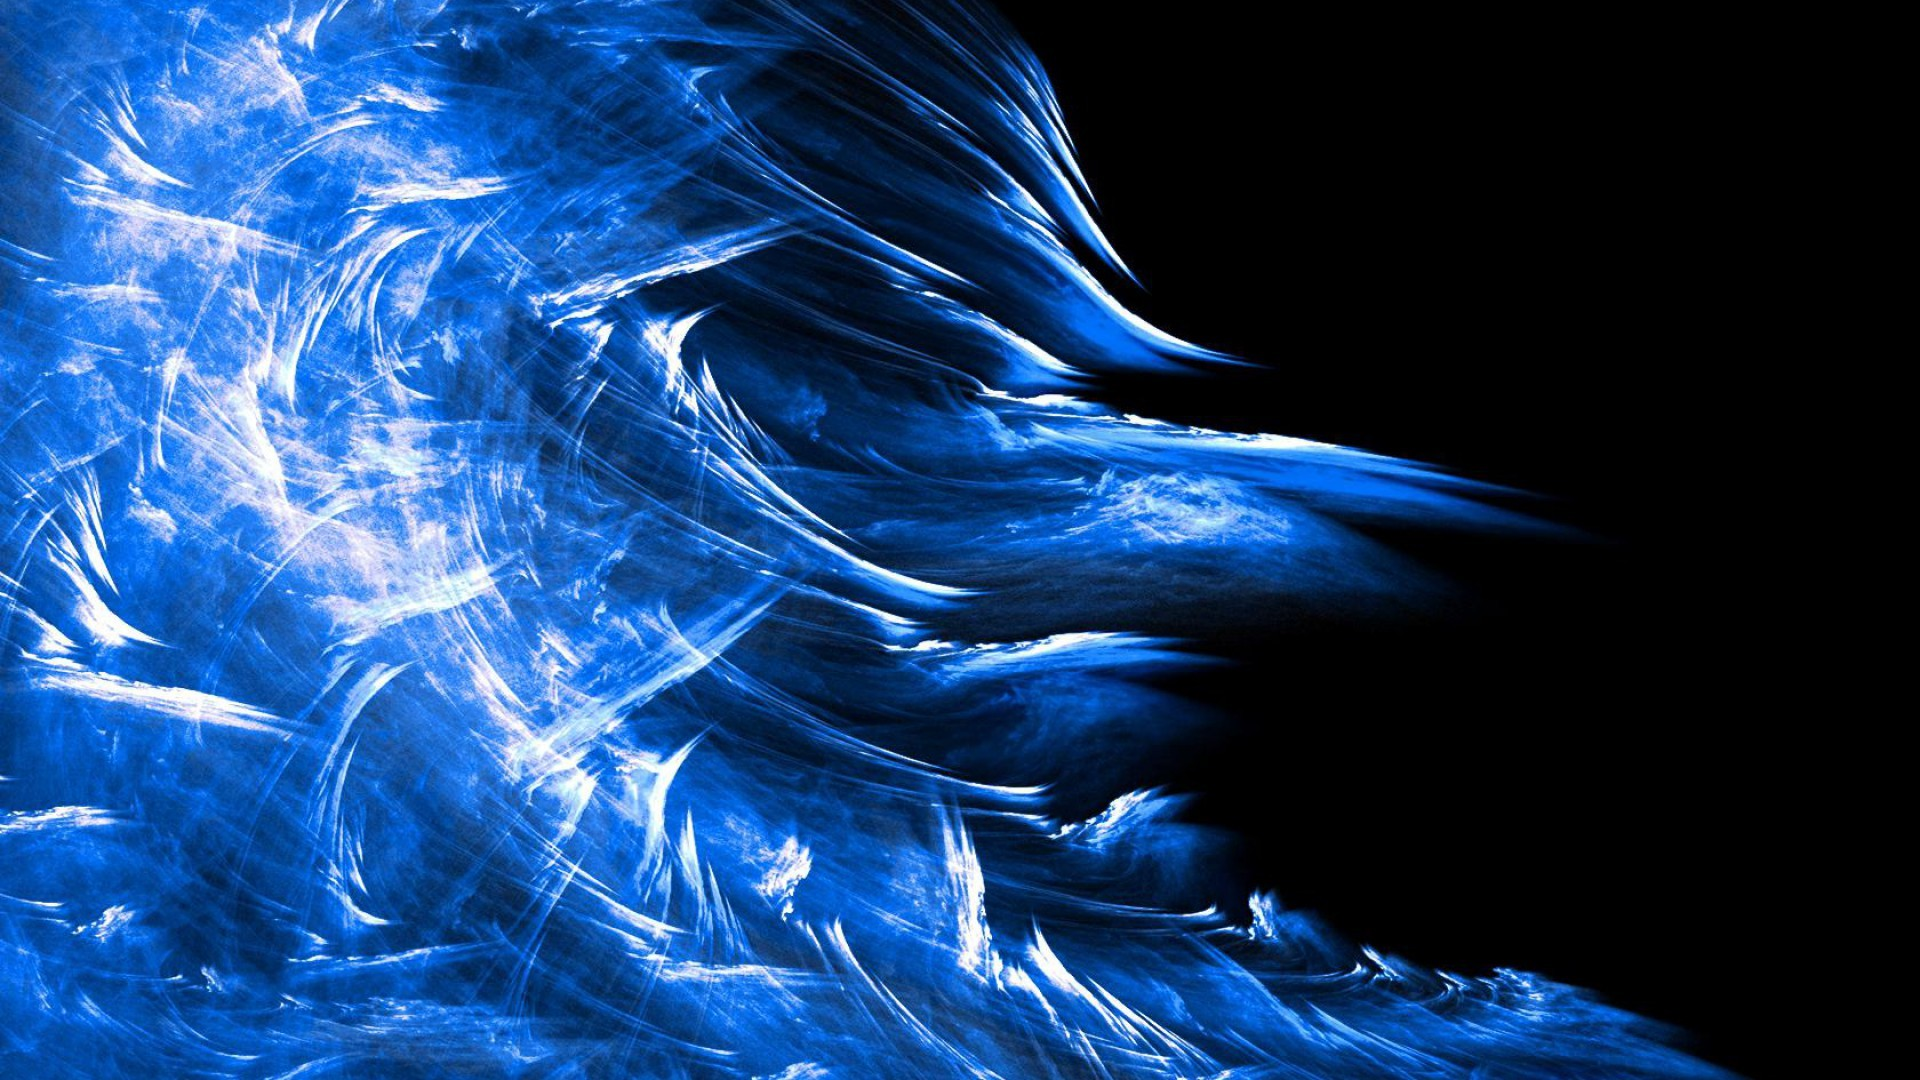 73 1080P Blue Wallpapers on WallpaperPlay 1920x1080